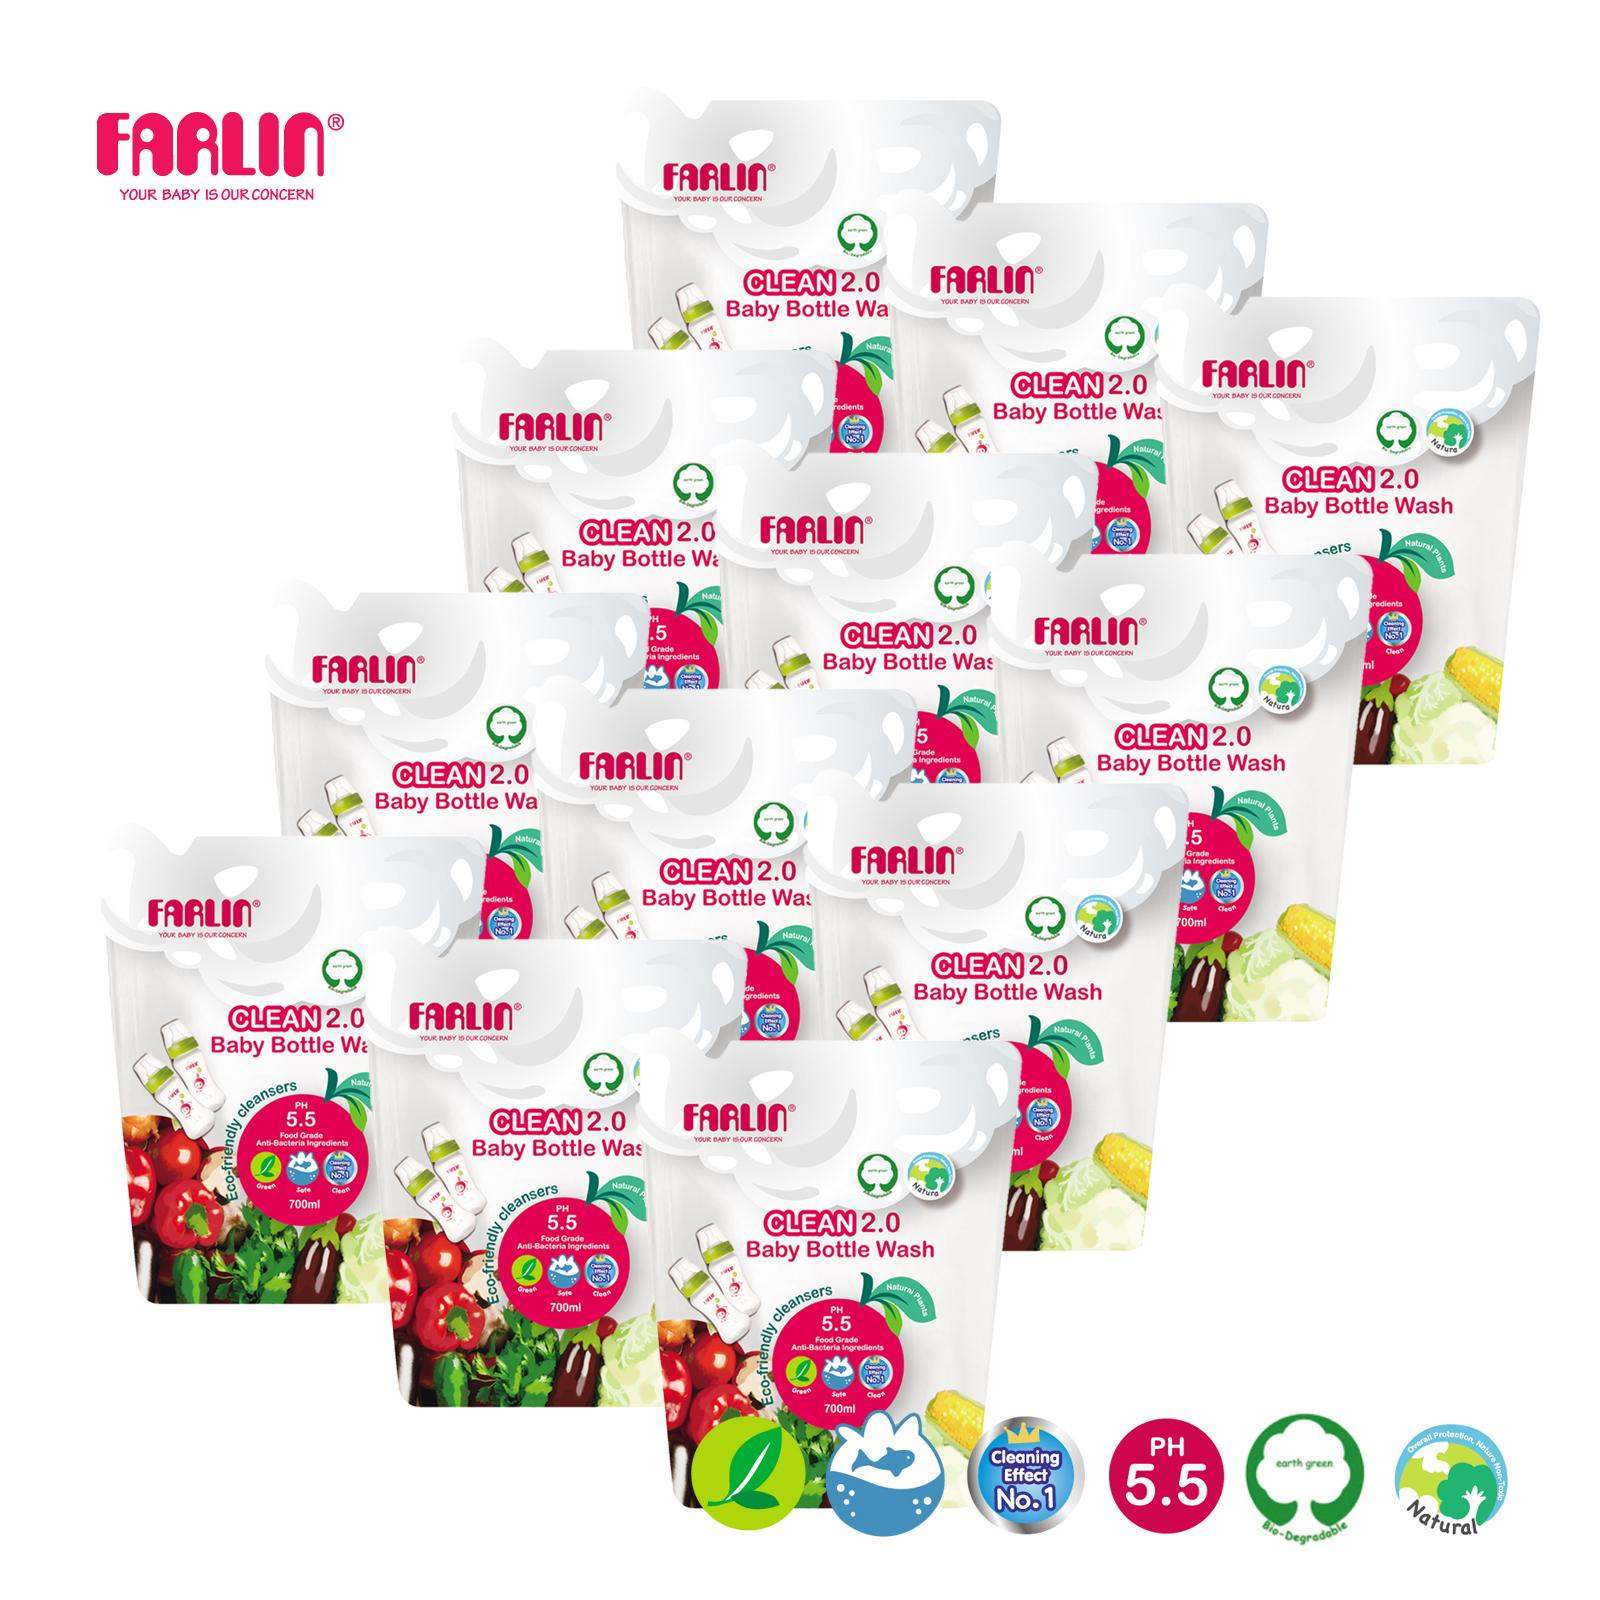 Farlin Clean2.0 Bottle Wash - 700ml Refill x 12bag